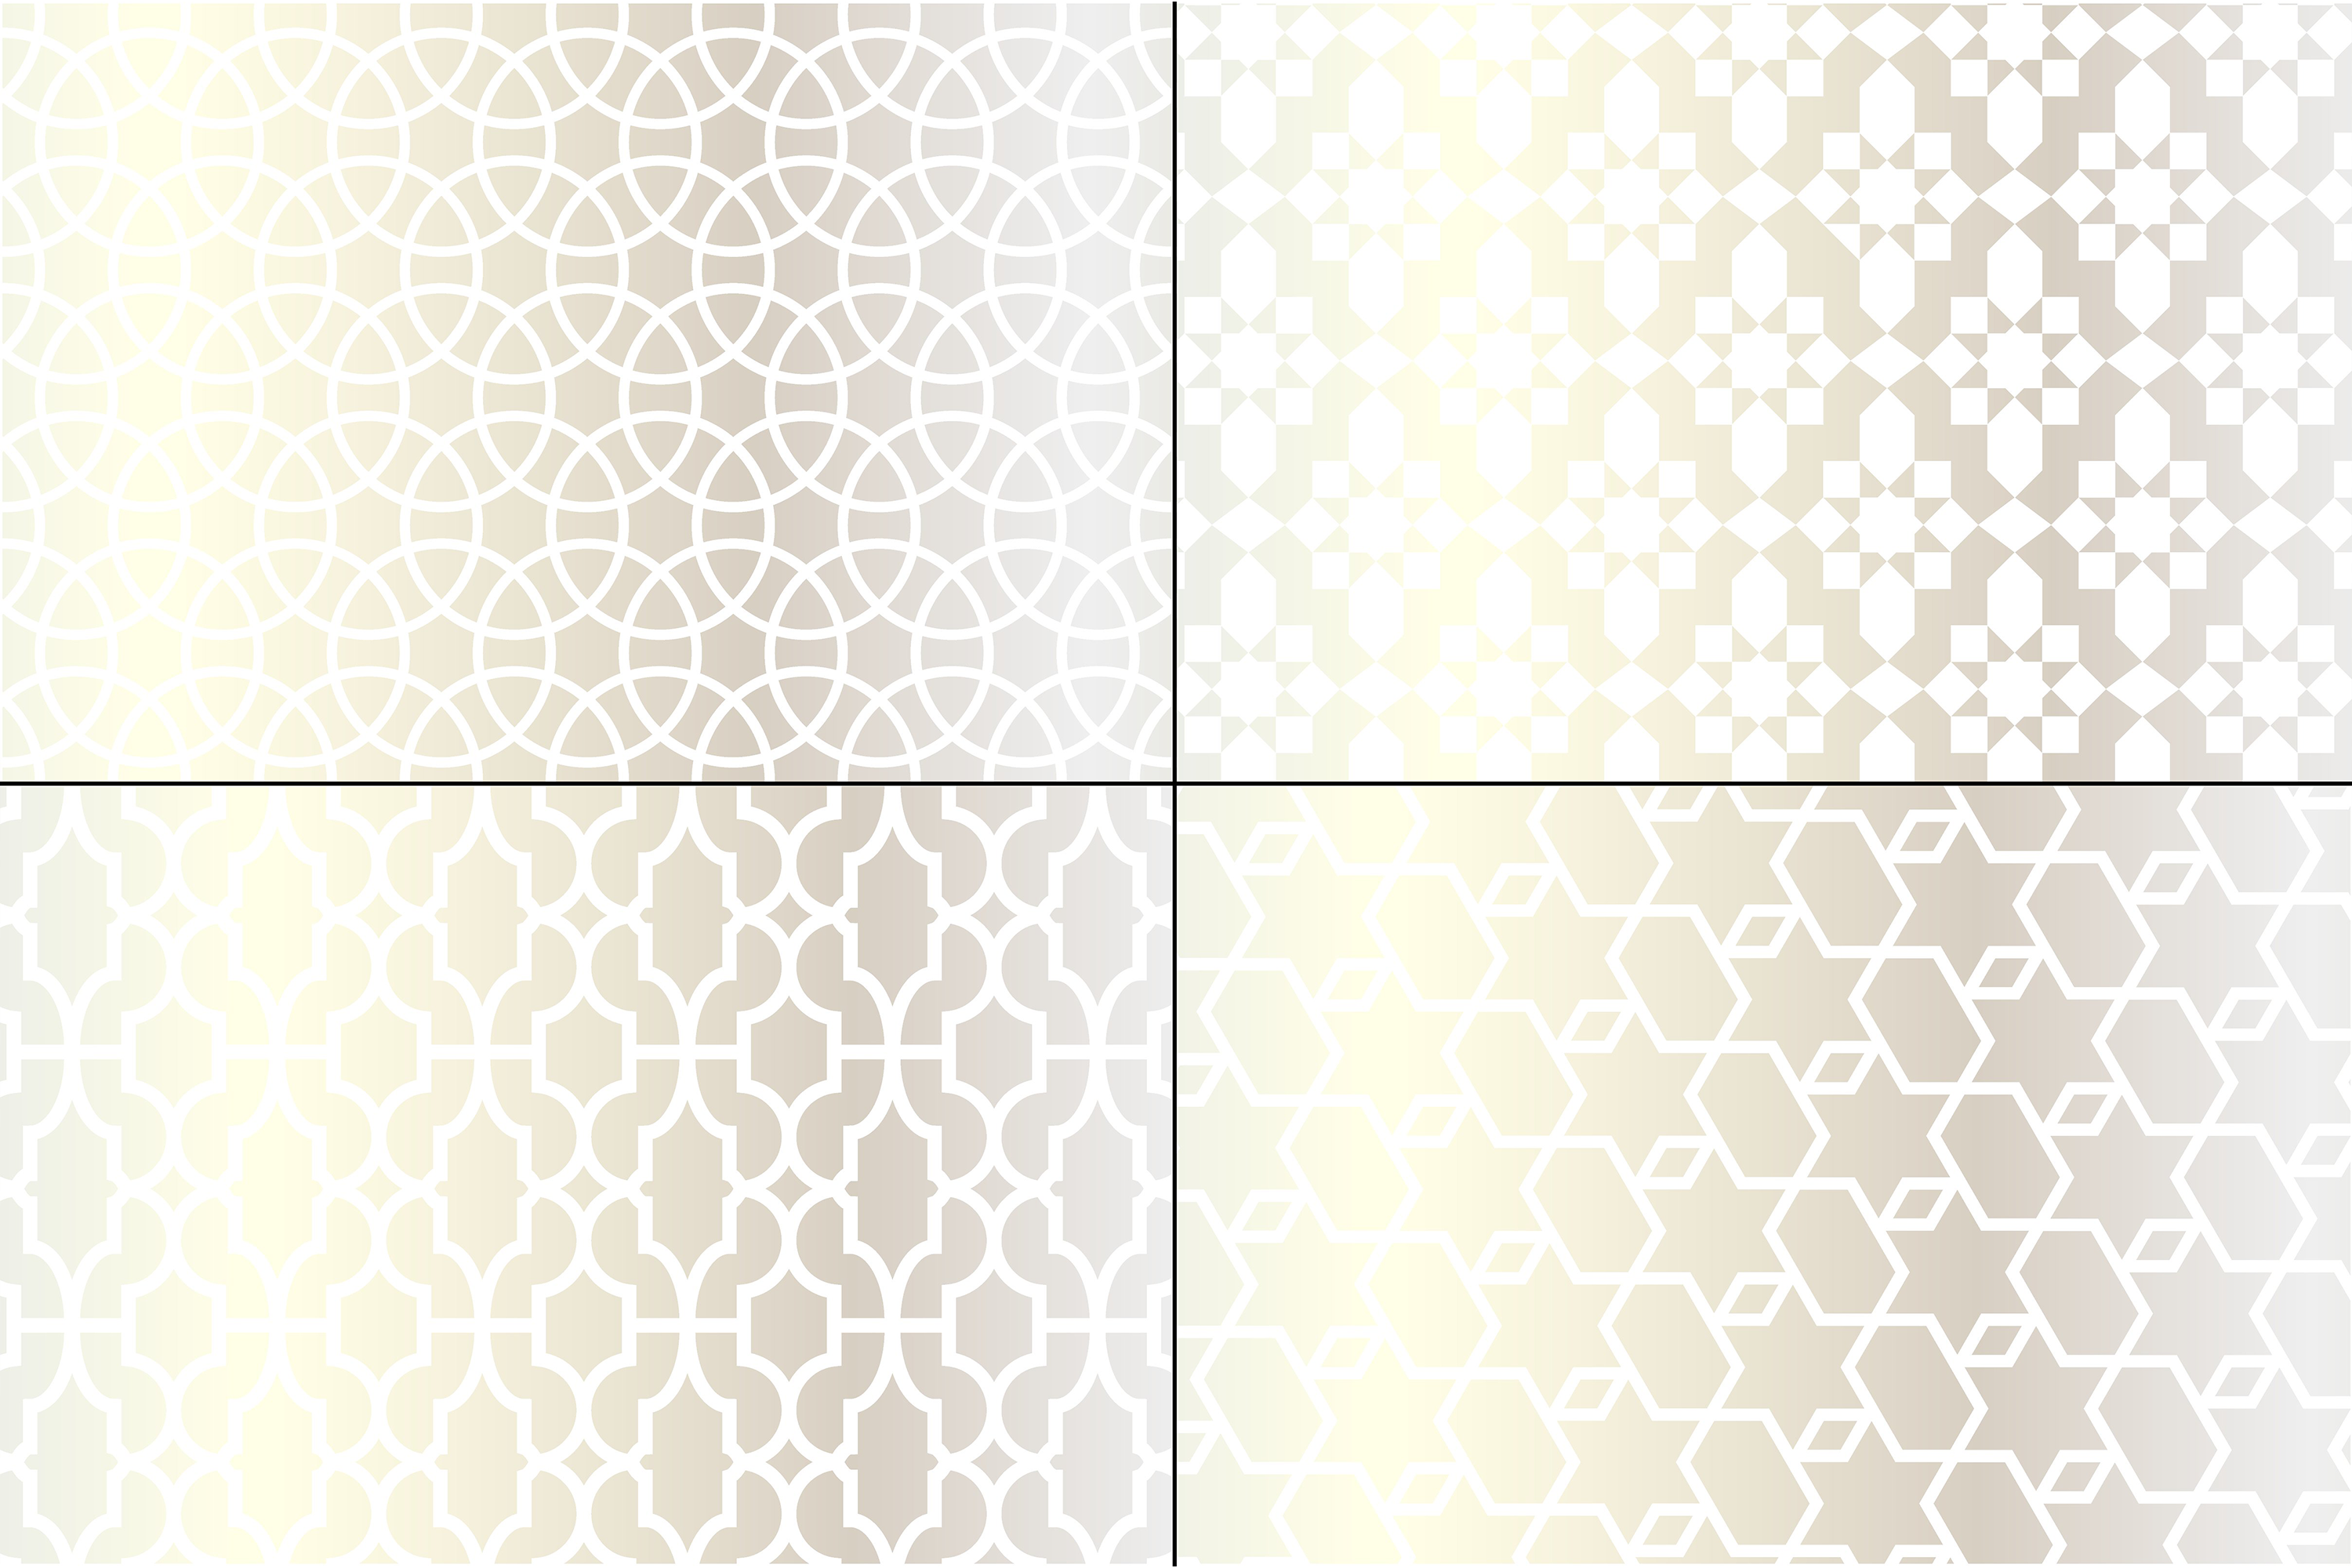 Silver Metallic Moroccan Patterns example image 4